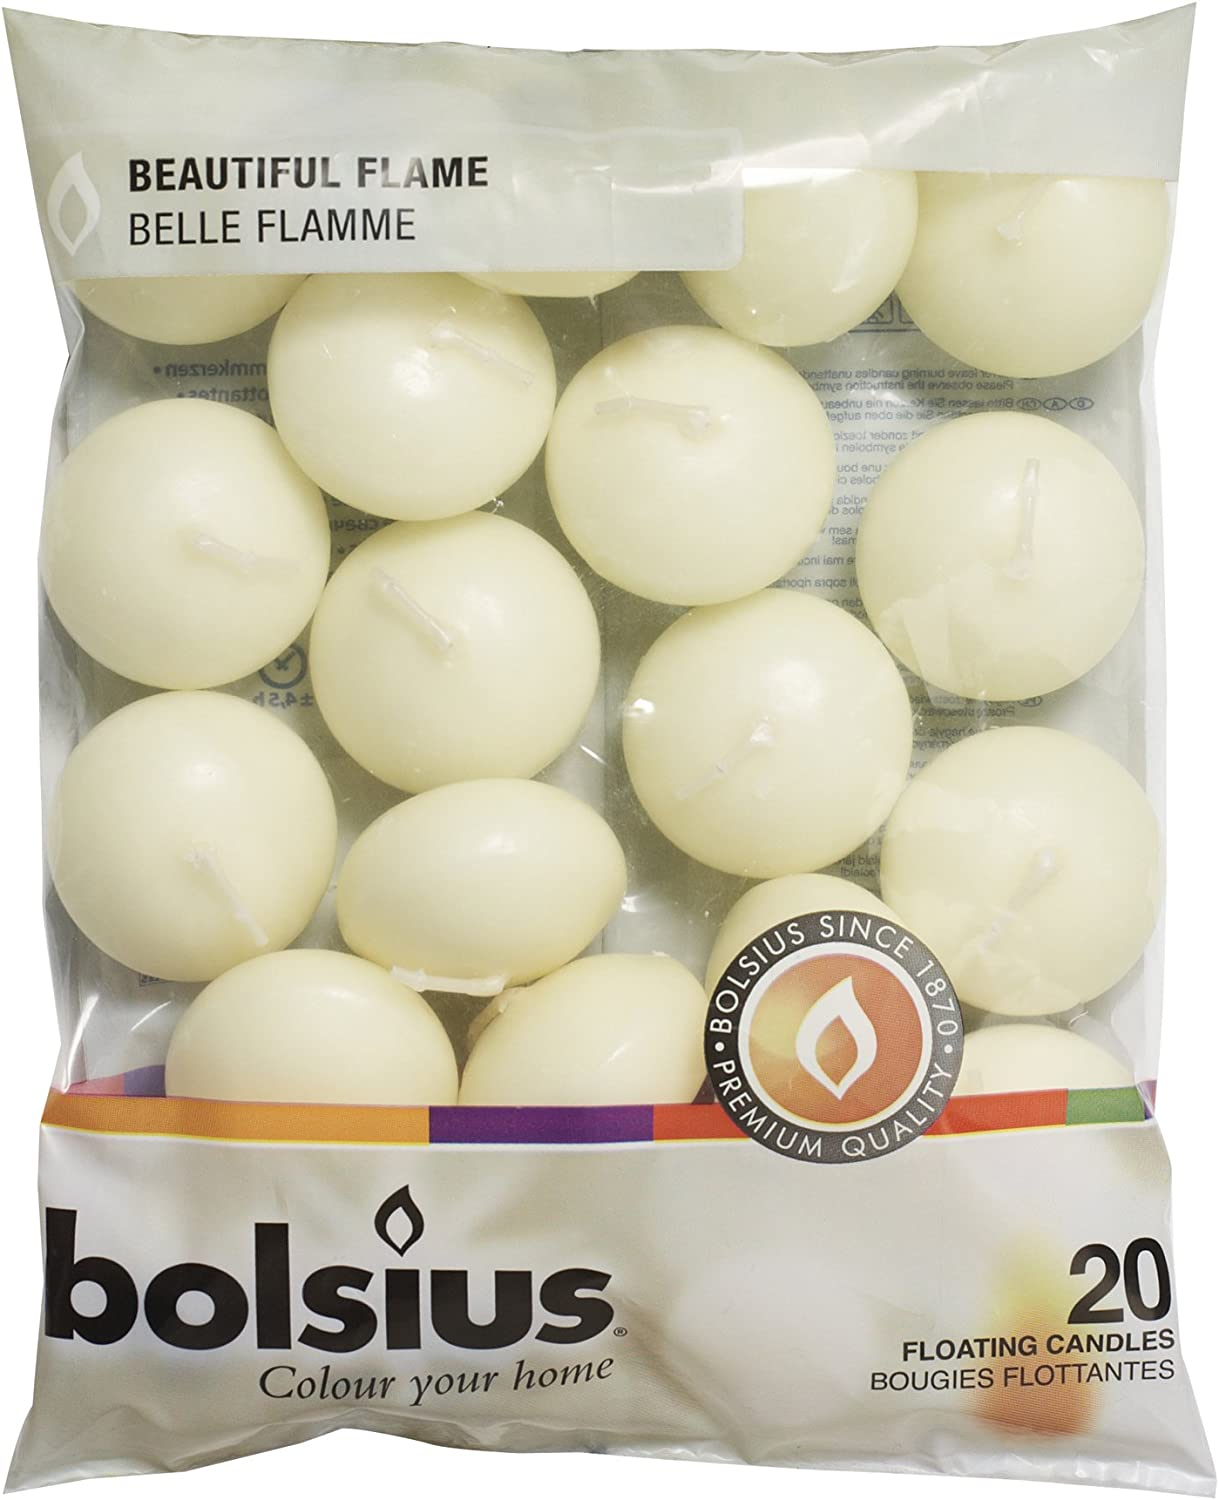 BOLSIUS Unscented Floating Candles - Creamy Ivory Pure 20 Rich Outlet SALE favorite